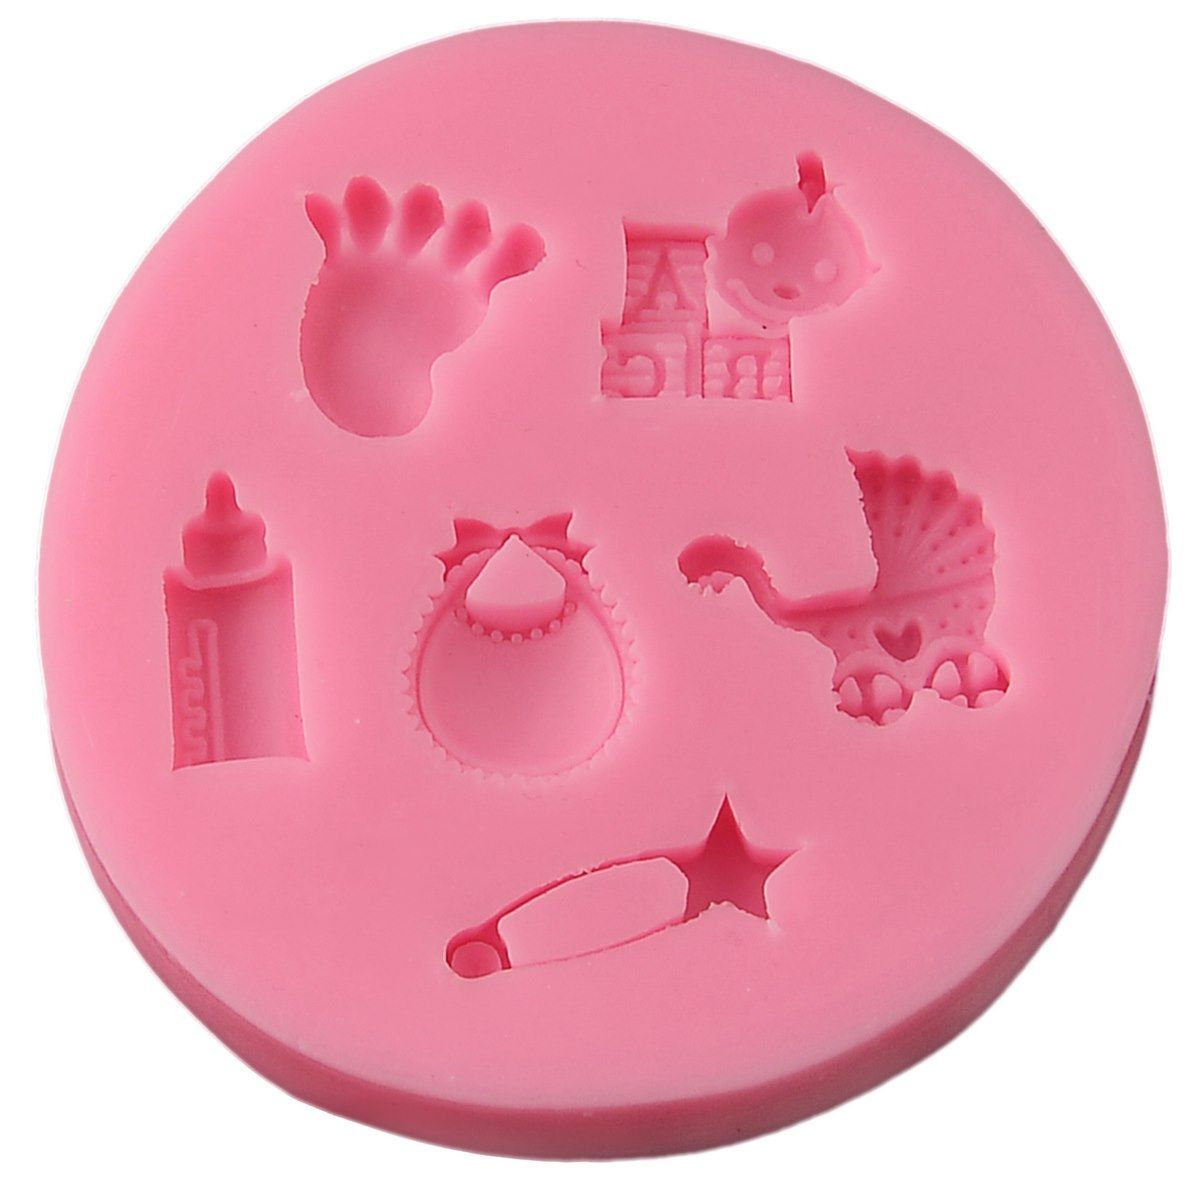 Resin Silicone Mould - Baby Elements Miniatures (8x8x1 cm)